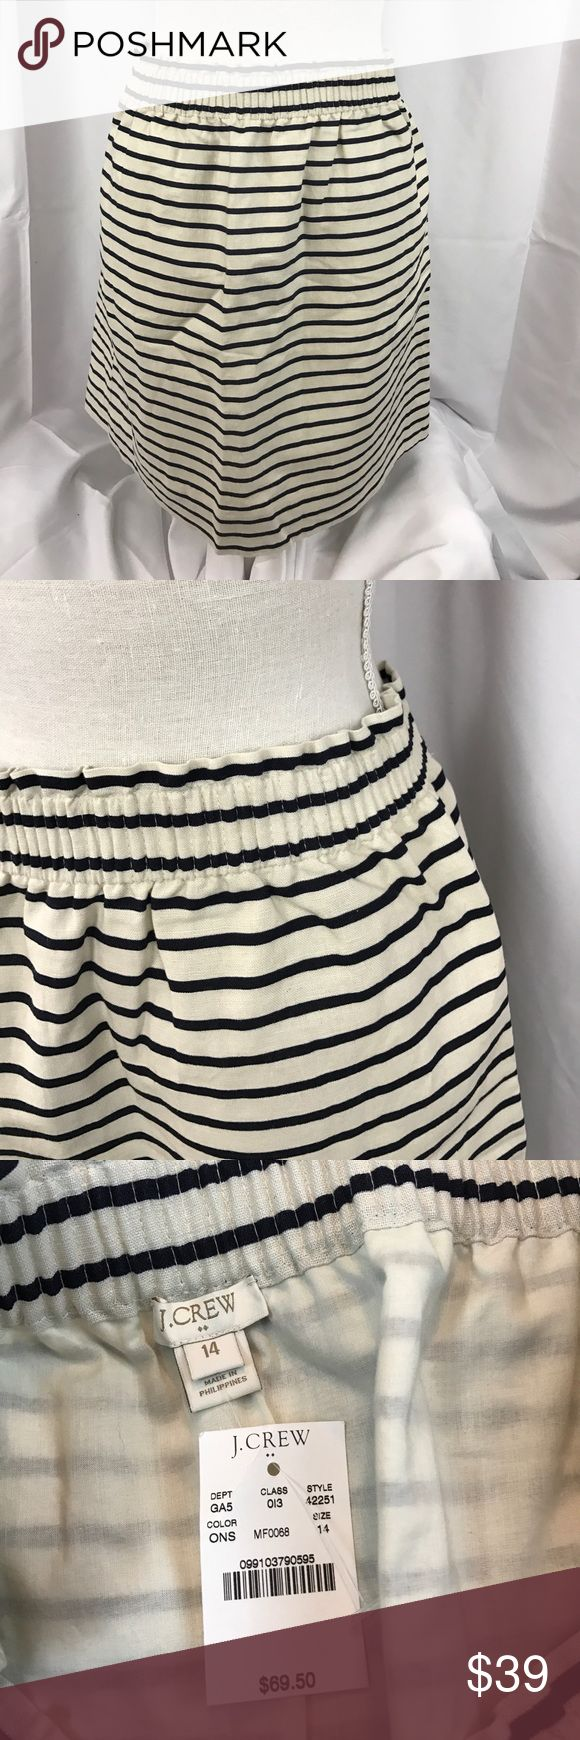 "NWT J. Crew sz14 Linen blend striped skirt NWT J. Crew sz14 Linen blend cream/navy striped skirt w/elastic waist...has pockets, which are soft stitched closed from factory-see Picts...great spring casual skirt...19"" total length... J. Crew Skirts"